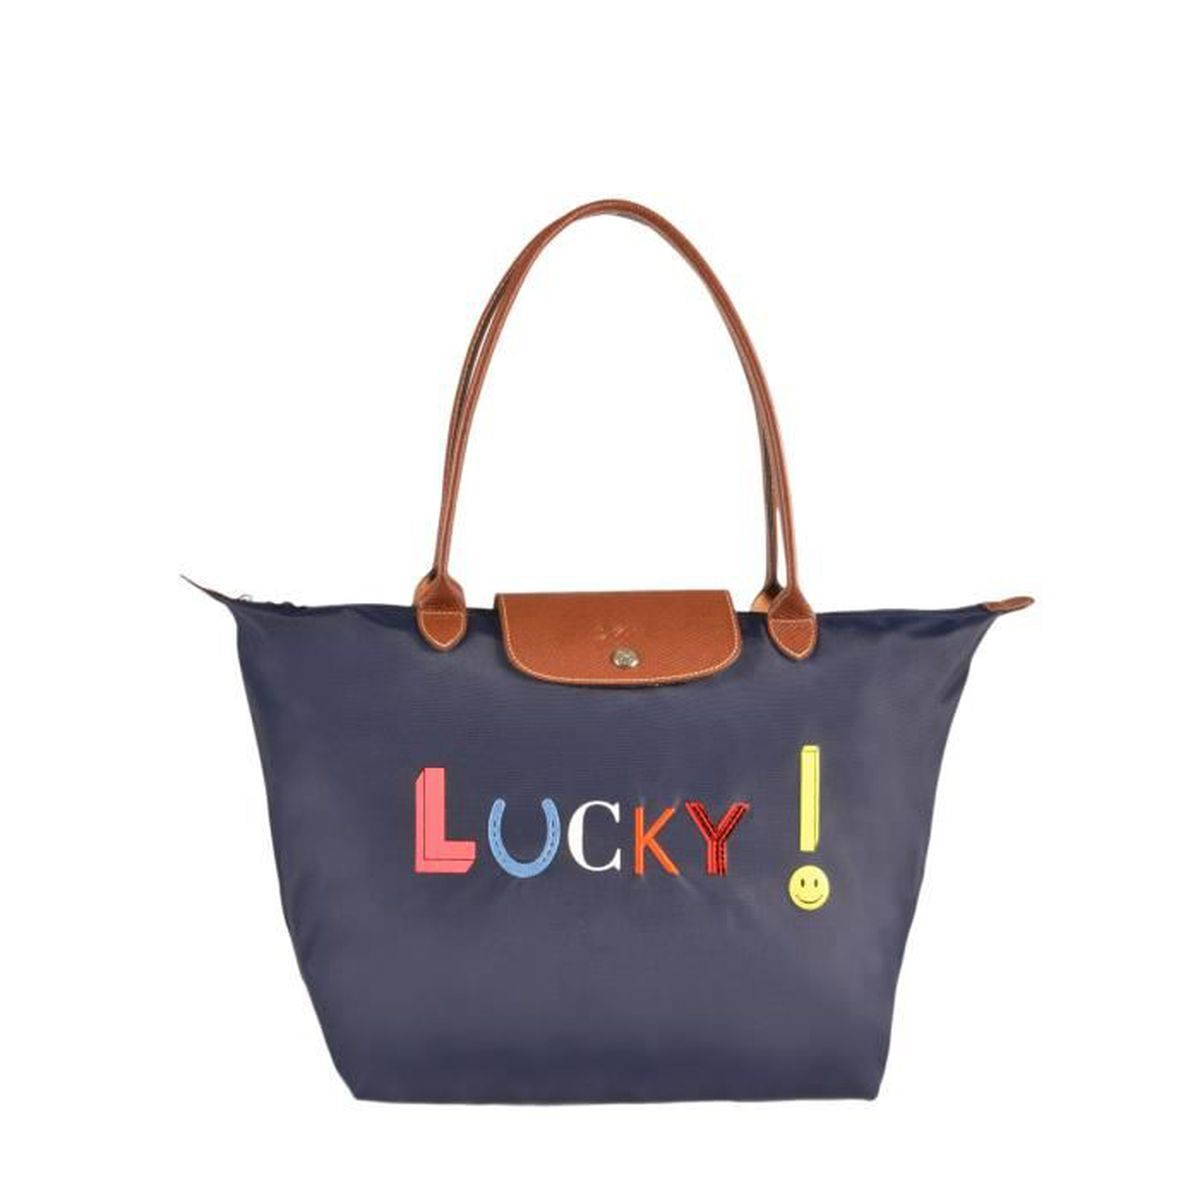 longchamp sac femme port paule marine pliage lucky achat vente longchamp sac femme. Black Bedroom Furniture Sets. Home Design Ideas